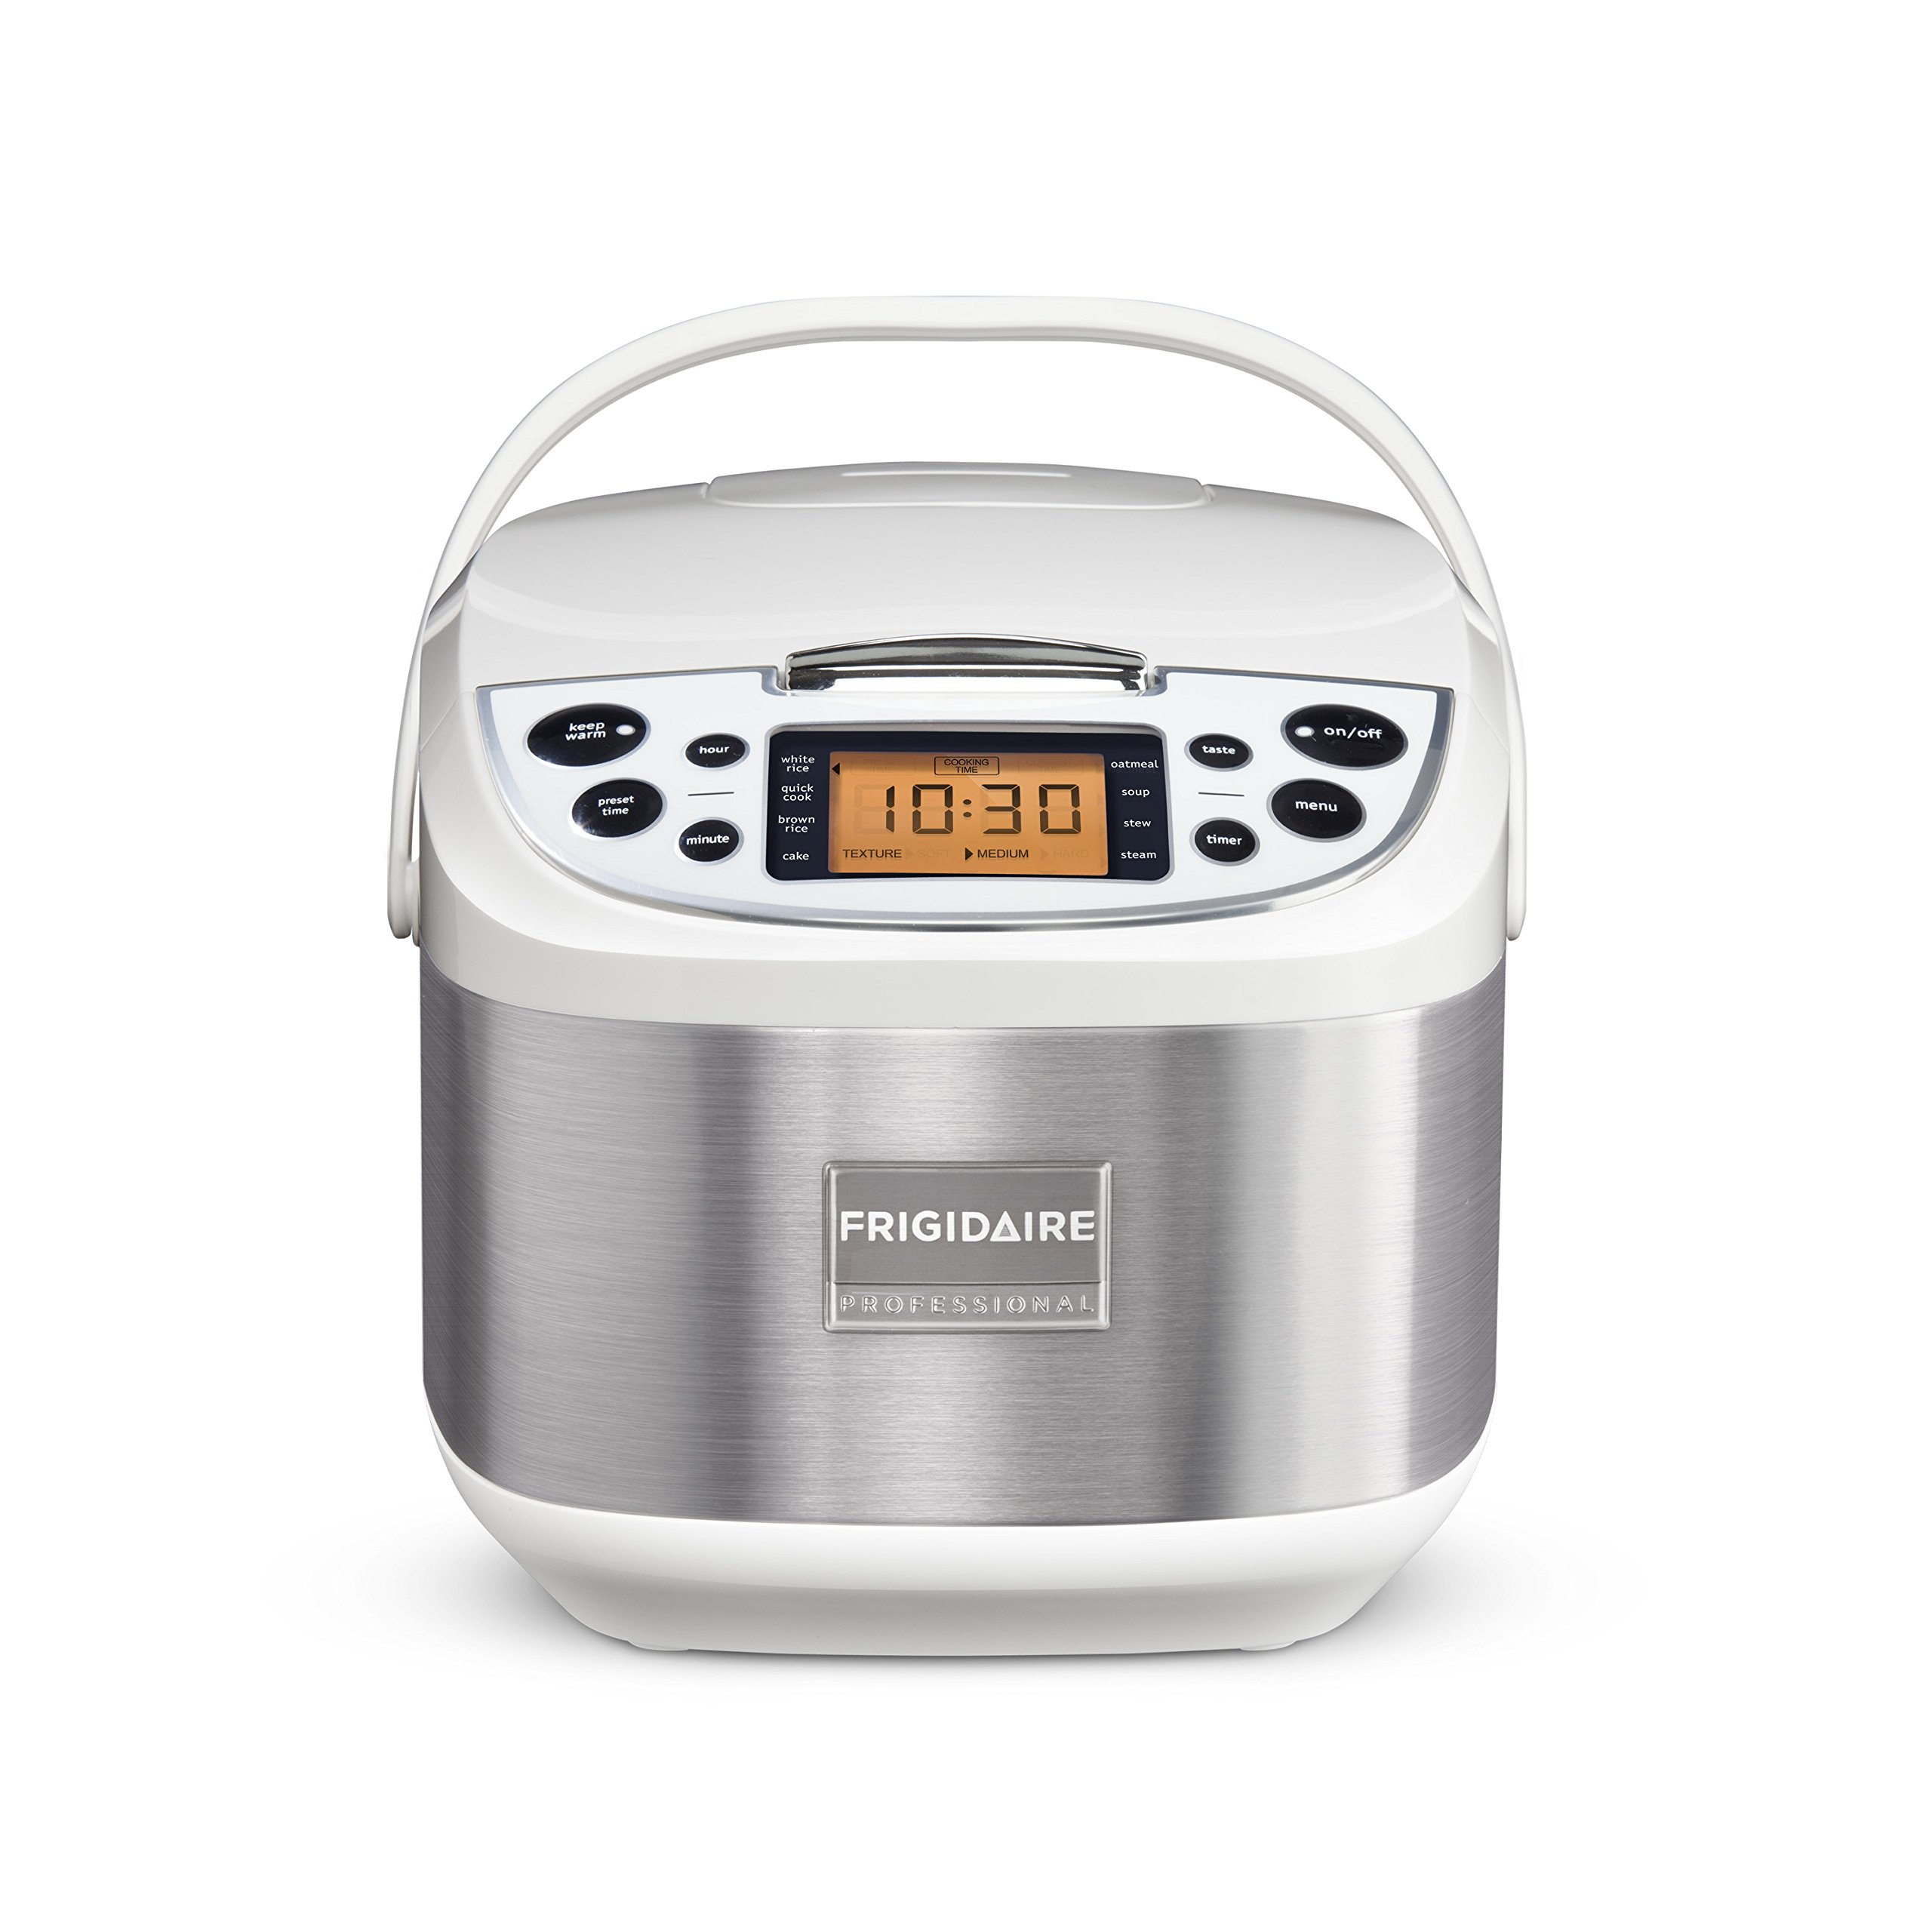 Frigidaire Professional 10-Cup Fuzzy Logic Rice Cooker, 11 Cooking Settings with Stainless Steel